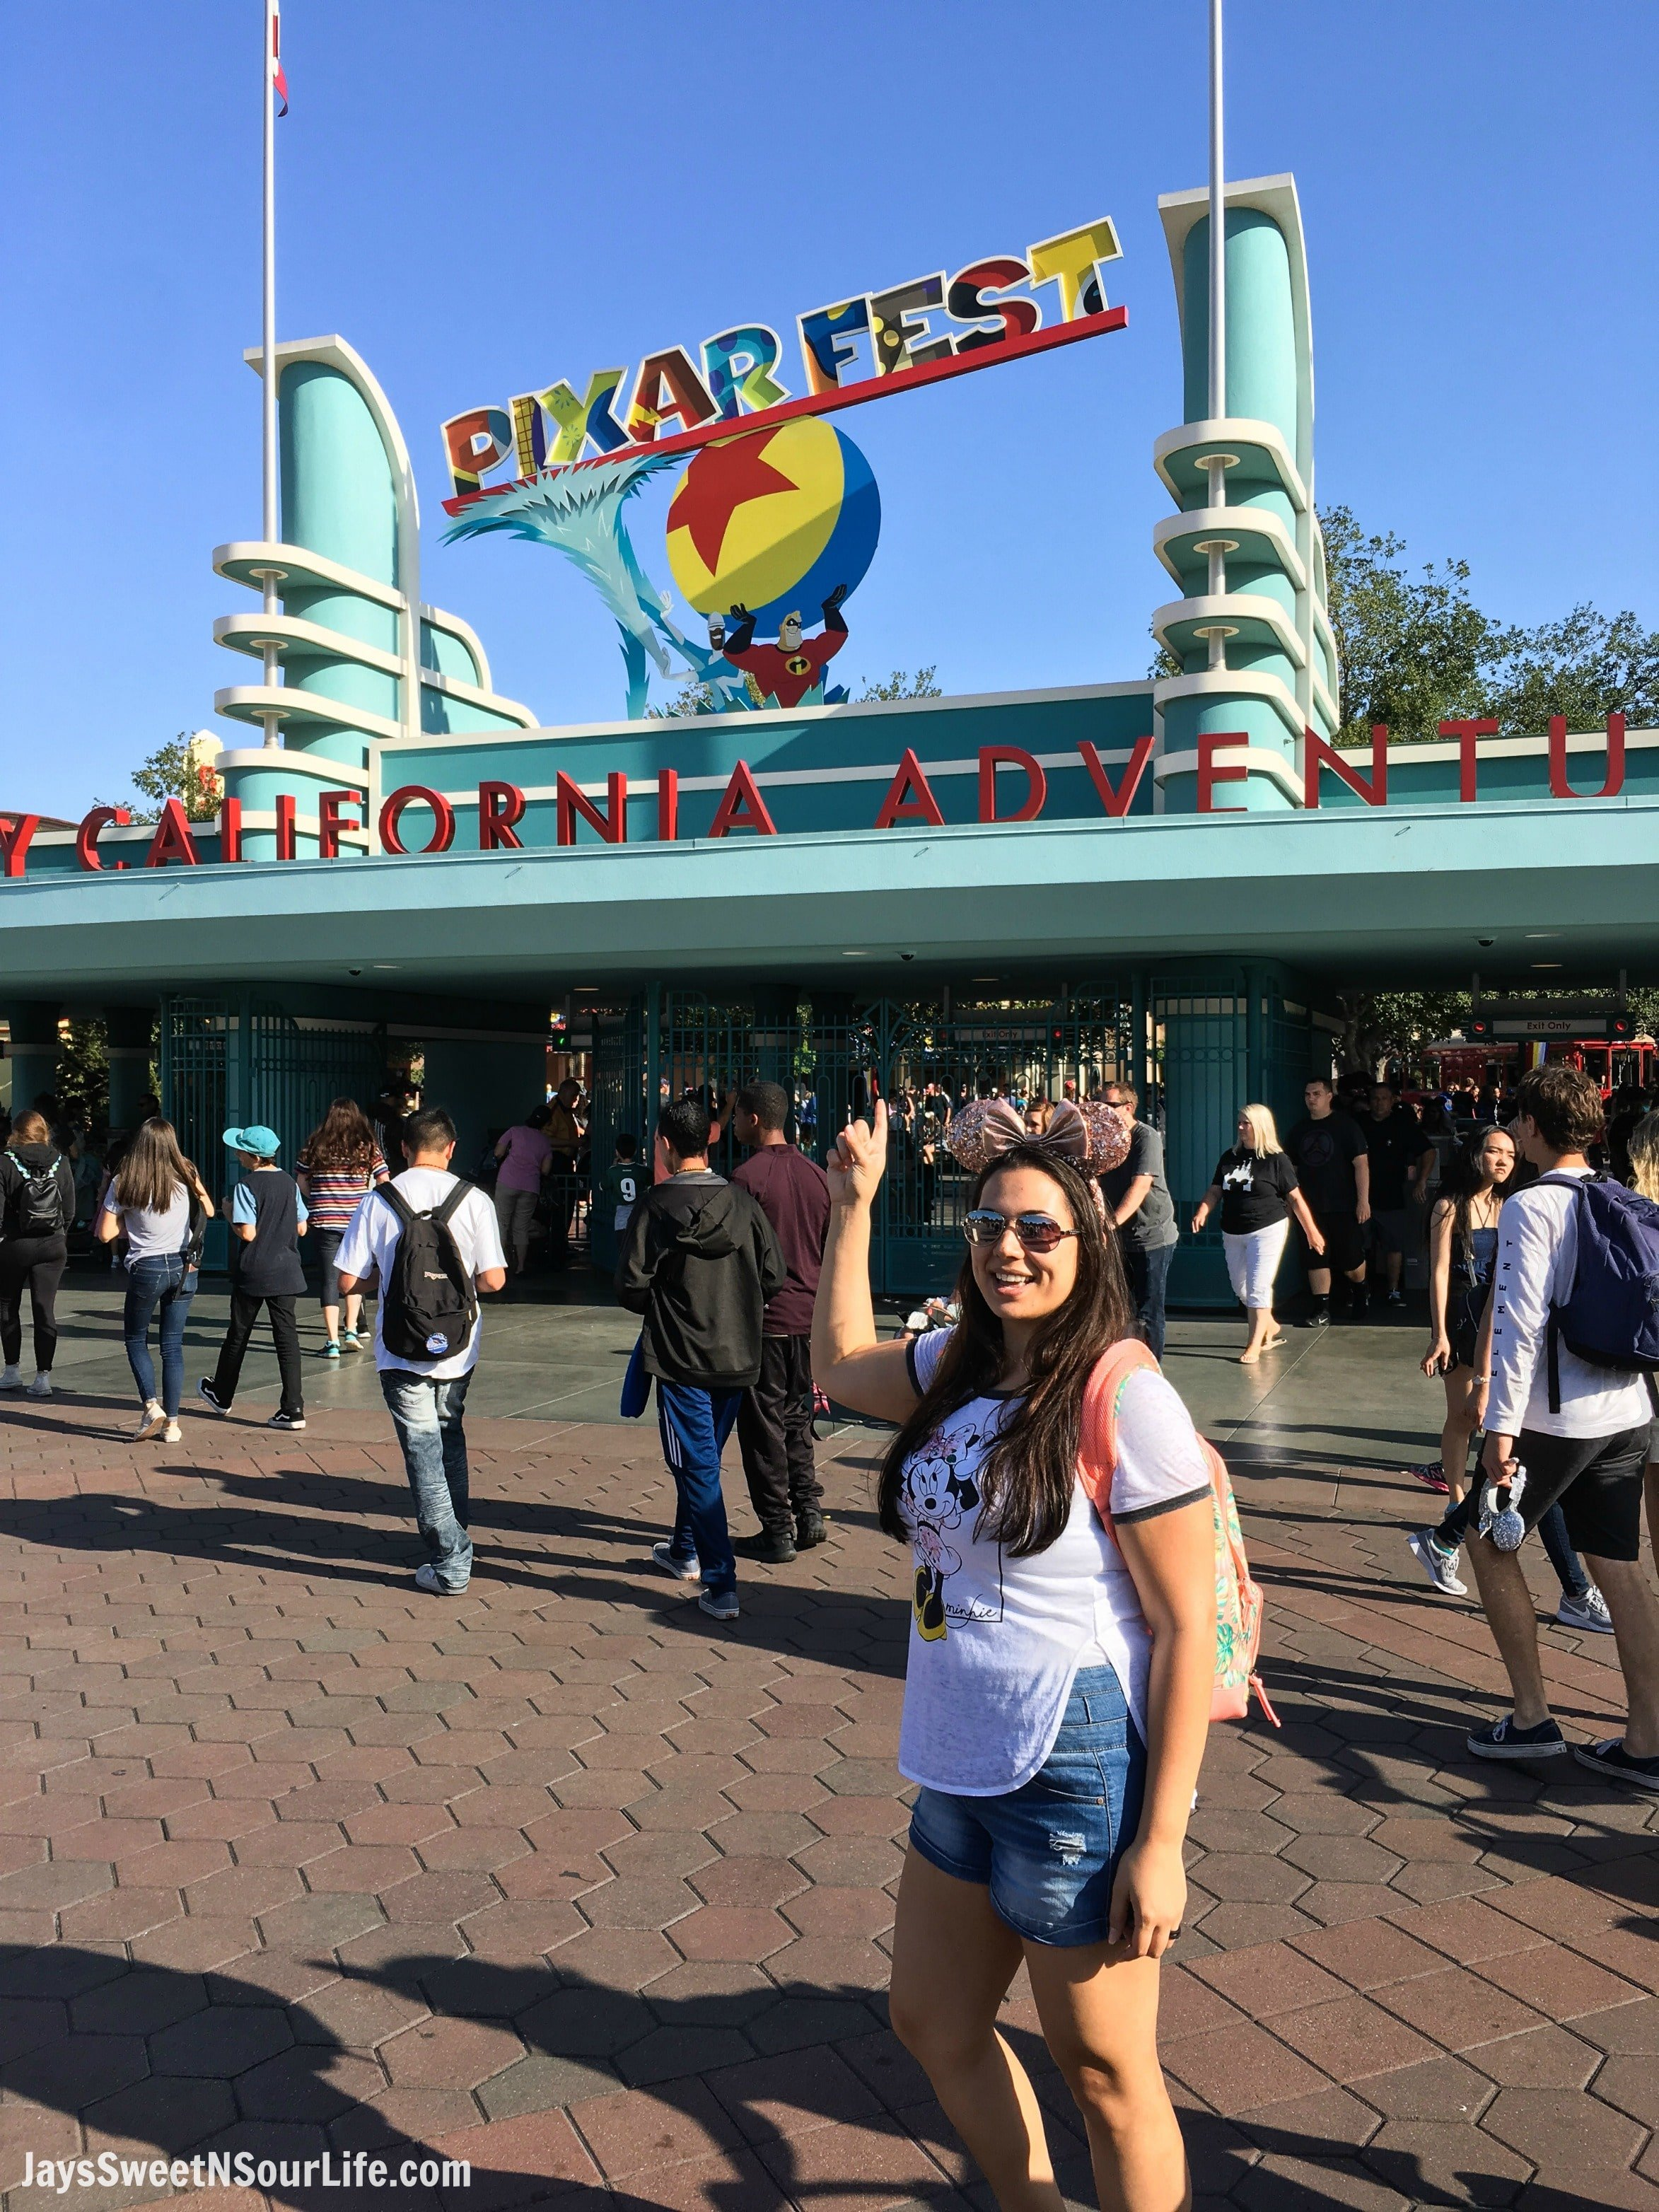 Pixar Fest at Disneyland | My Incredibles Mission